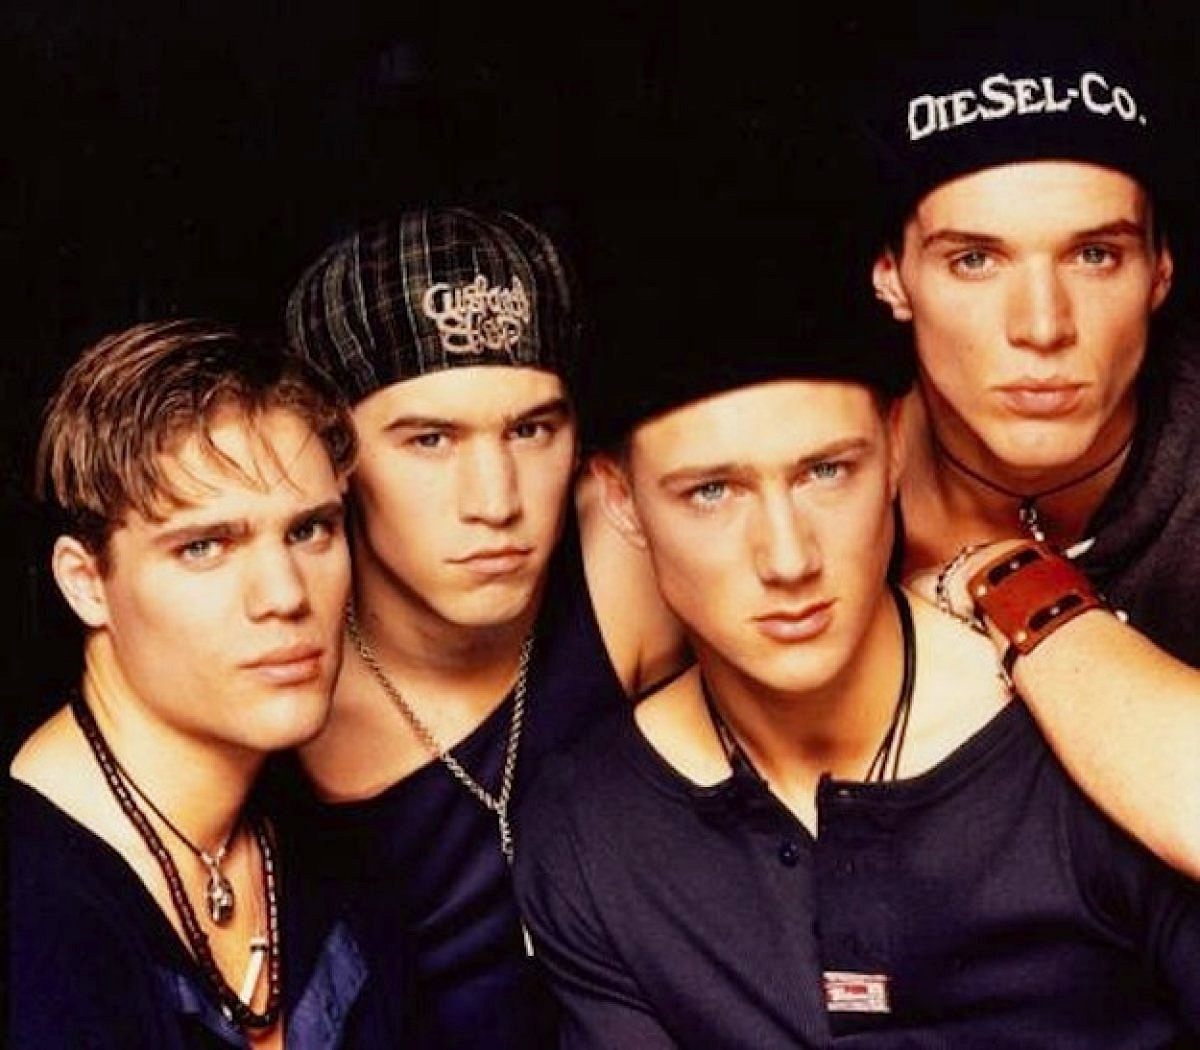 8 16 10 Boy Bands You've Most Definitely Forgotten About